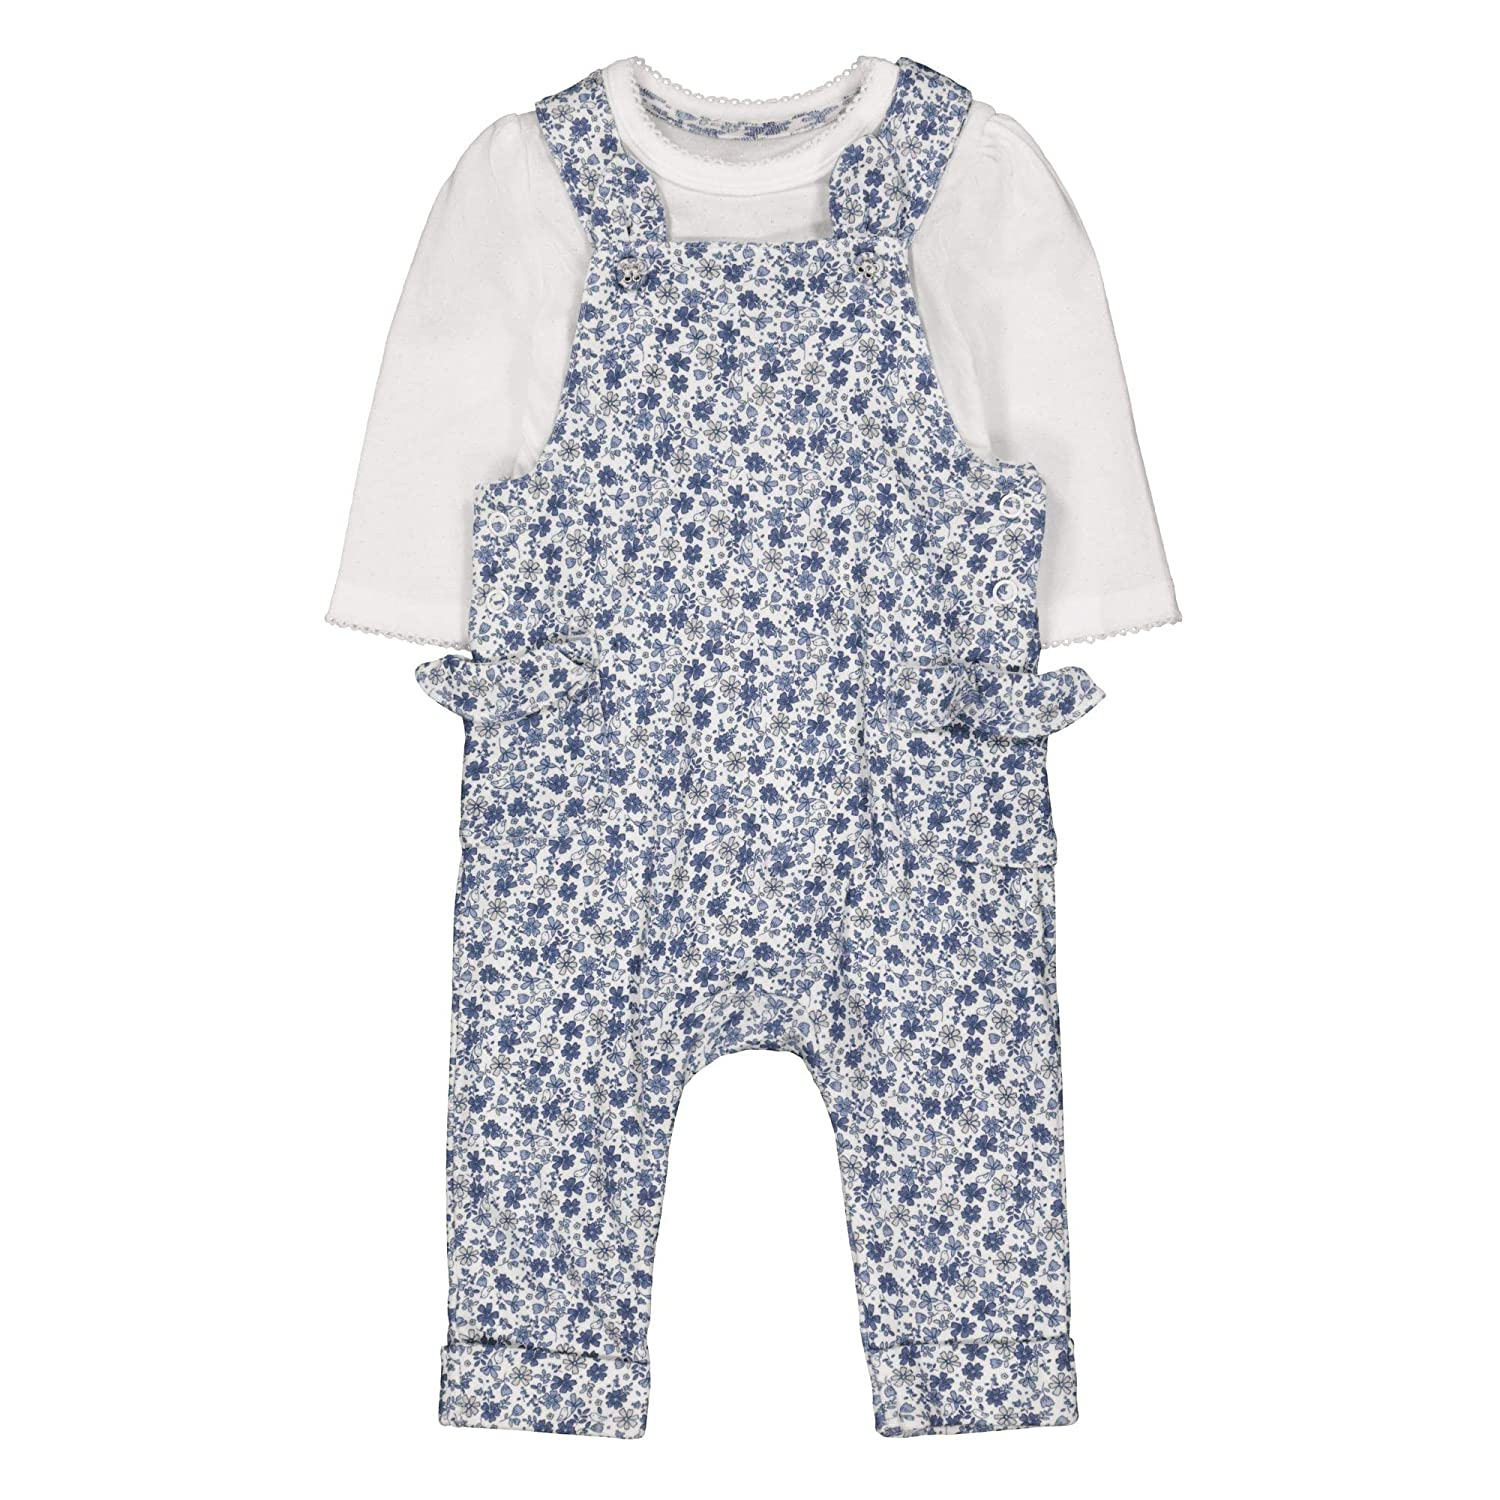 Mothercare Baby Girls' Floral Dungaree Set QD600